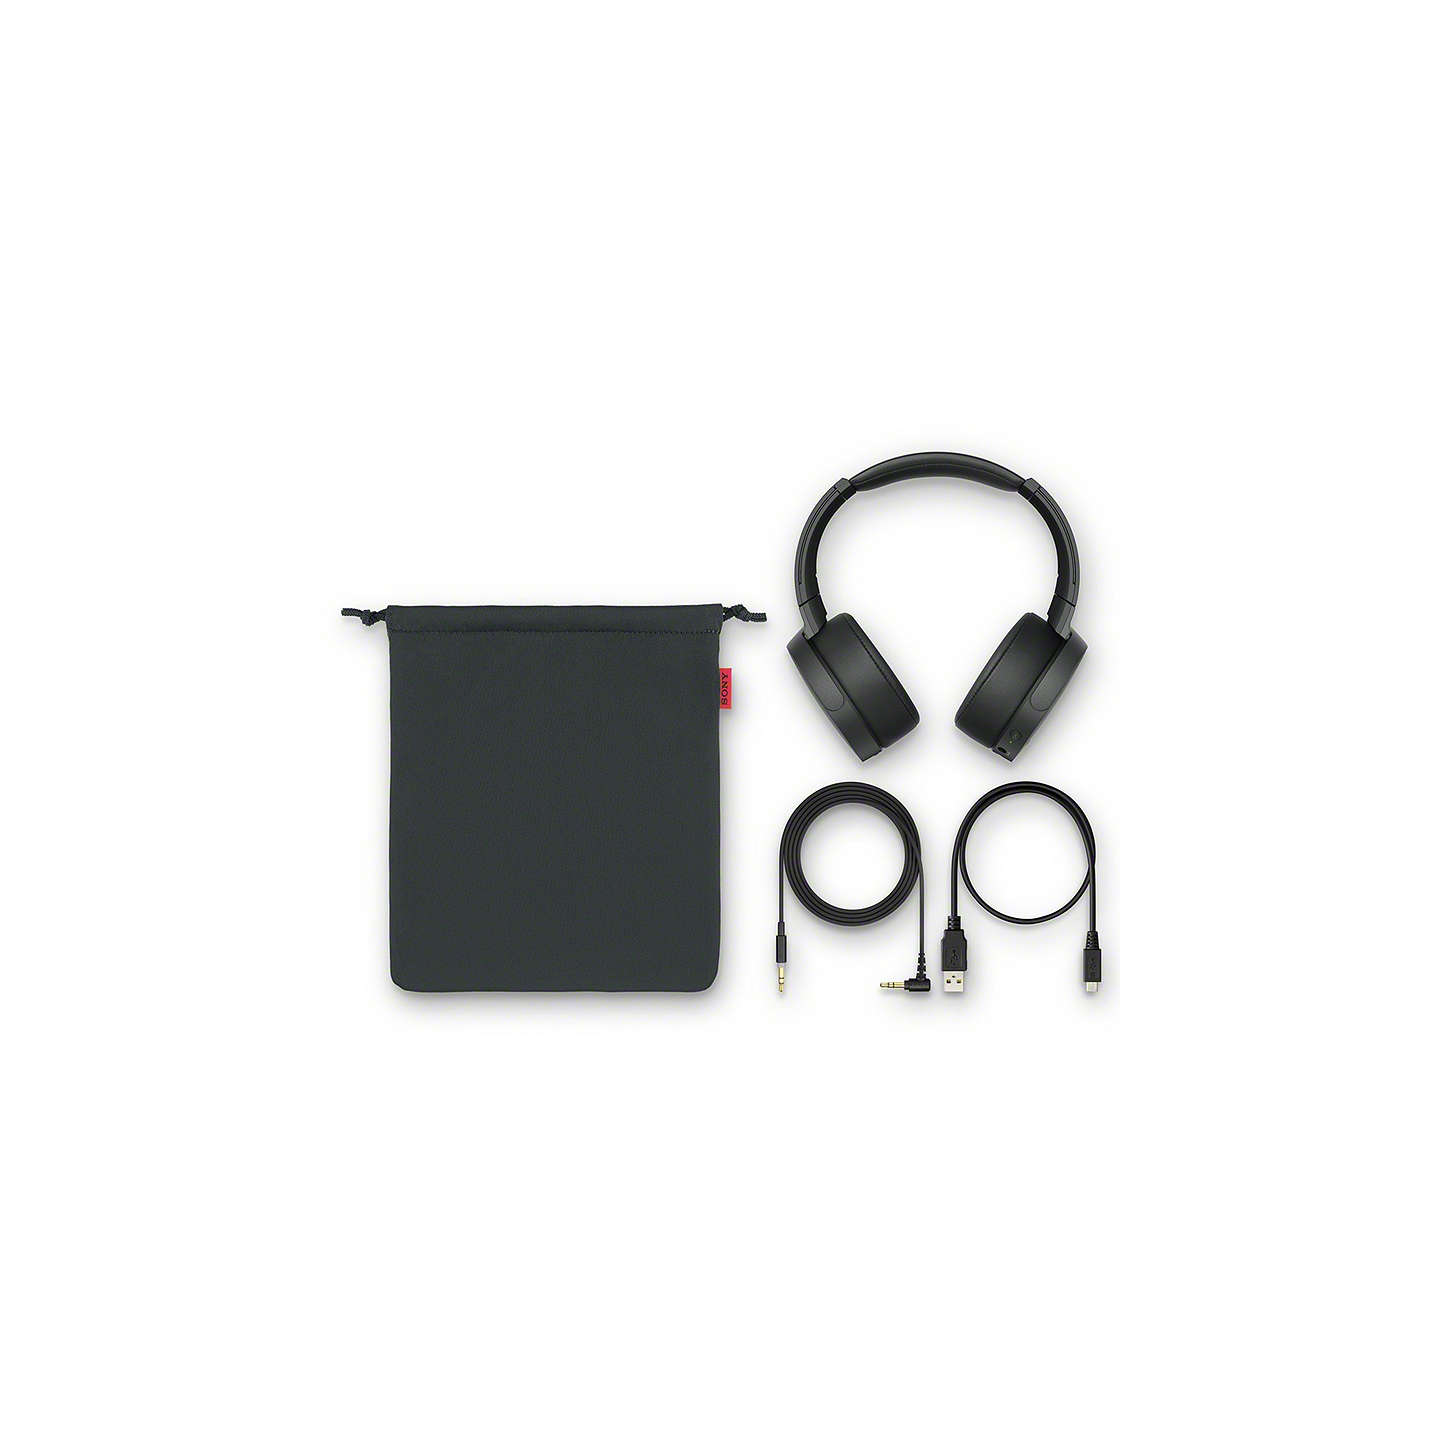 BuySony MDR-XB950N1 Noise Cancelling Extra Bass Bluetooth NFC Over-Ear Headphones, Black Online at johnlewis.com